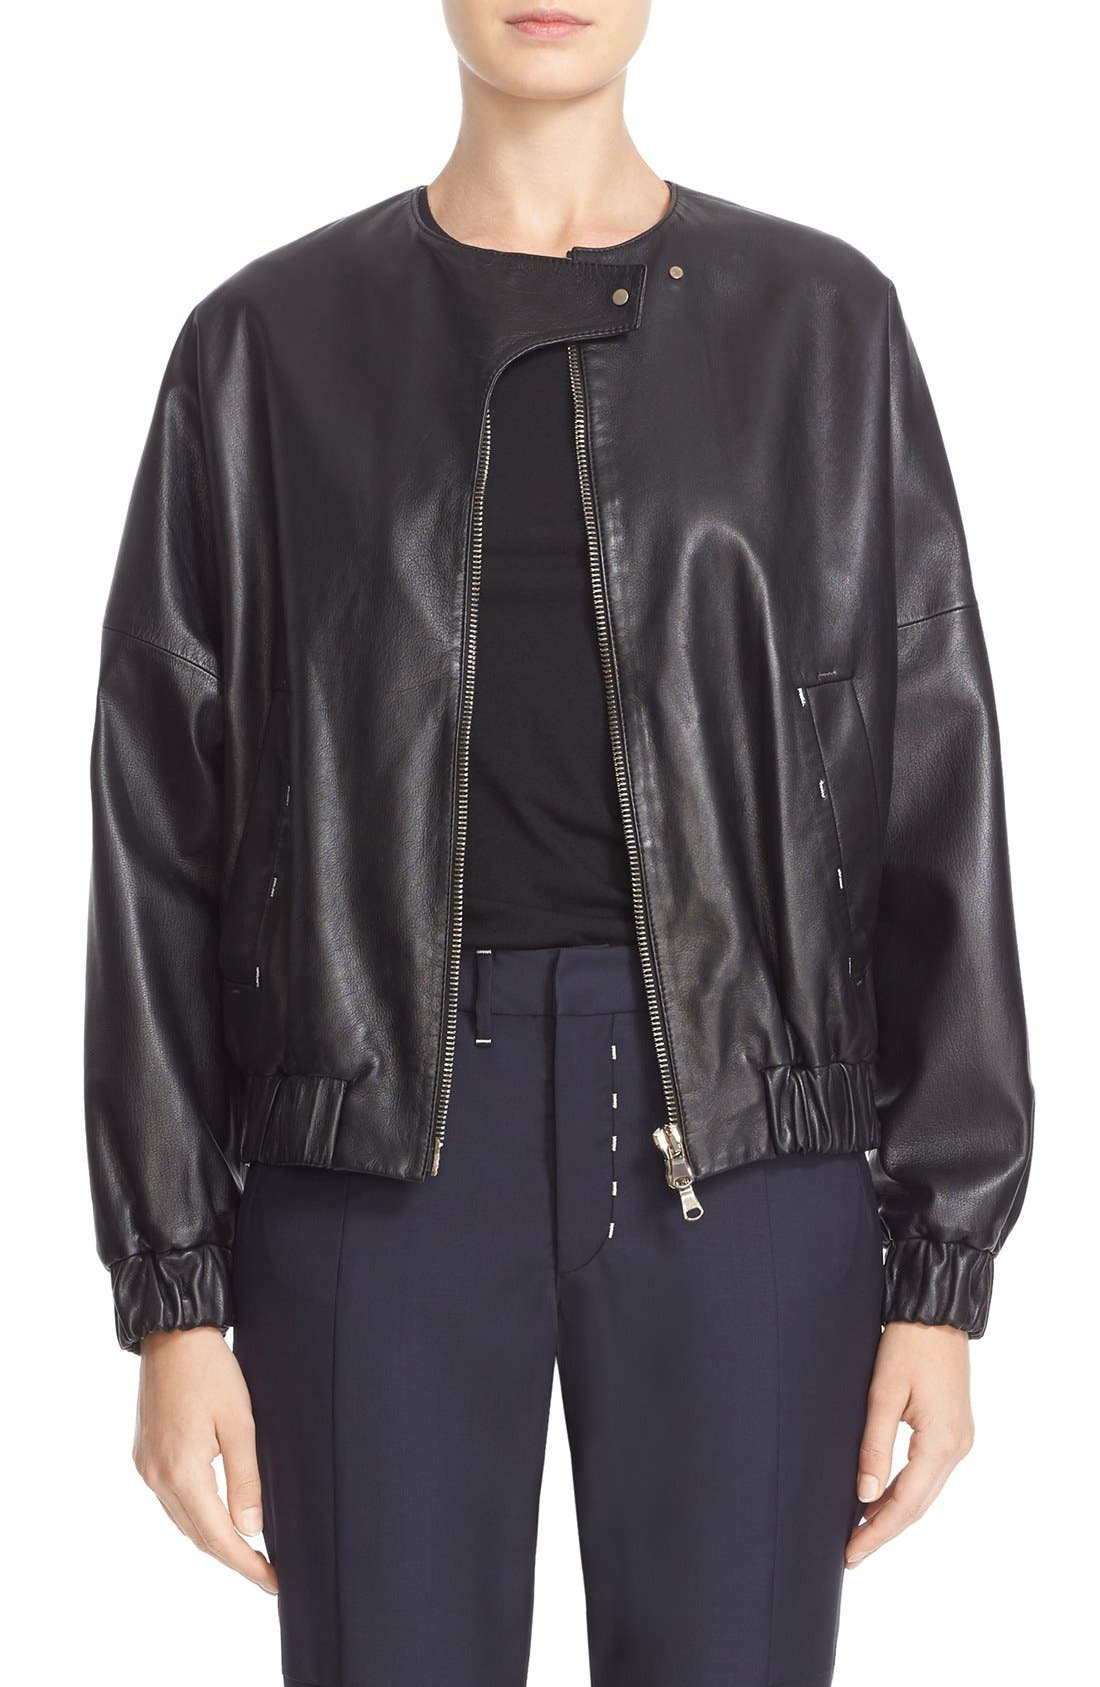 Main Image - Colovos Leather Bomber Jacket